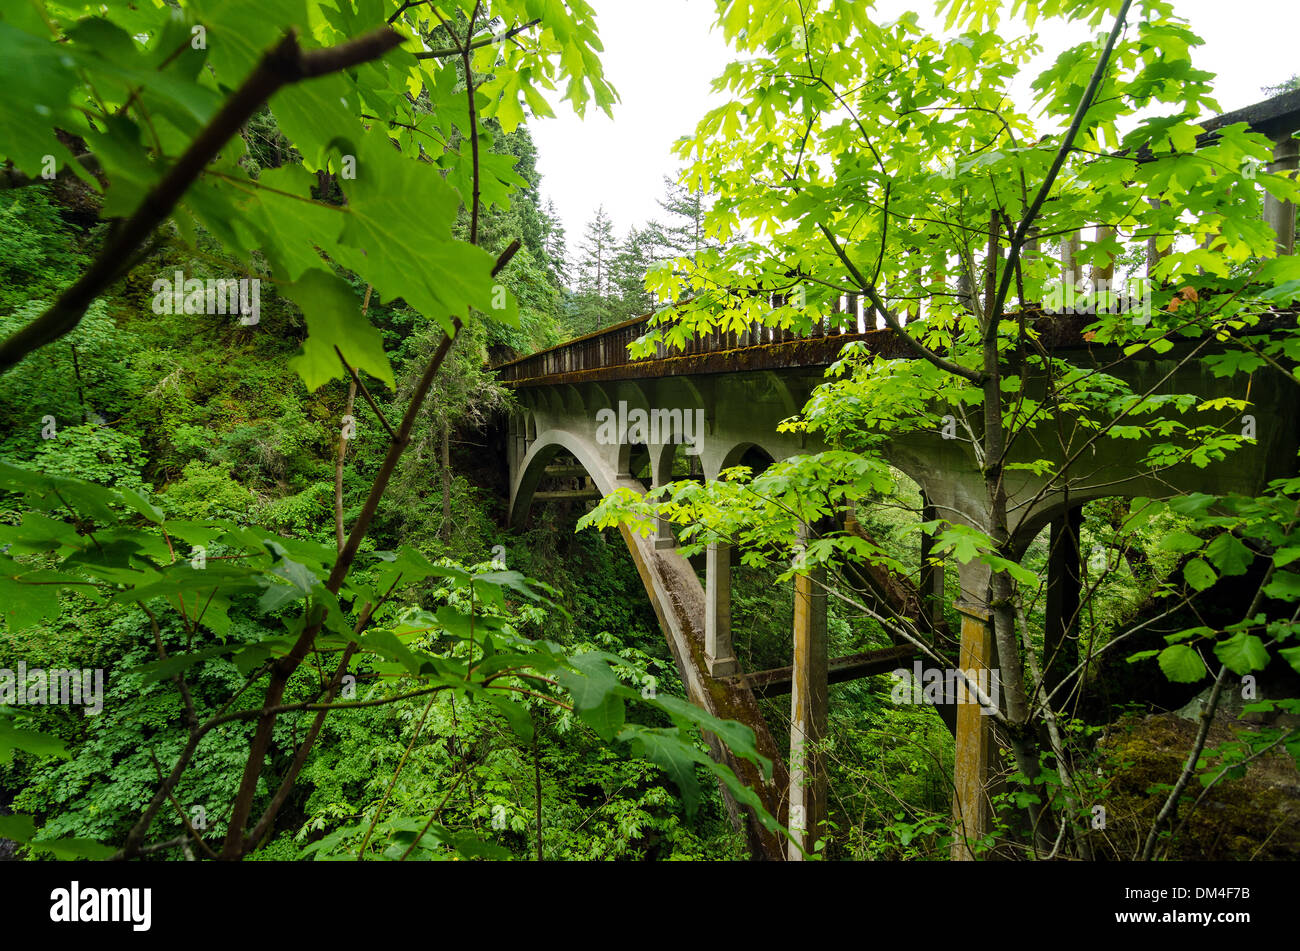 Bridge on historic Highway 30 running through the Columbia River Gorge and a lush green forest - Stock Image